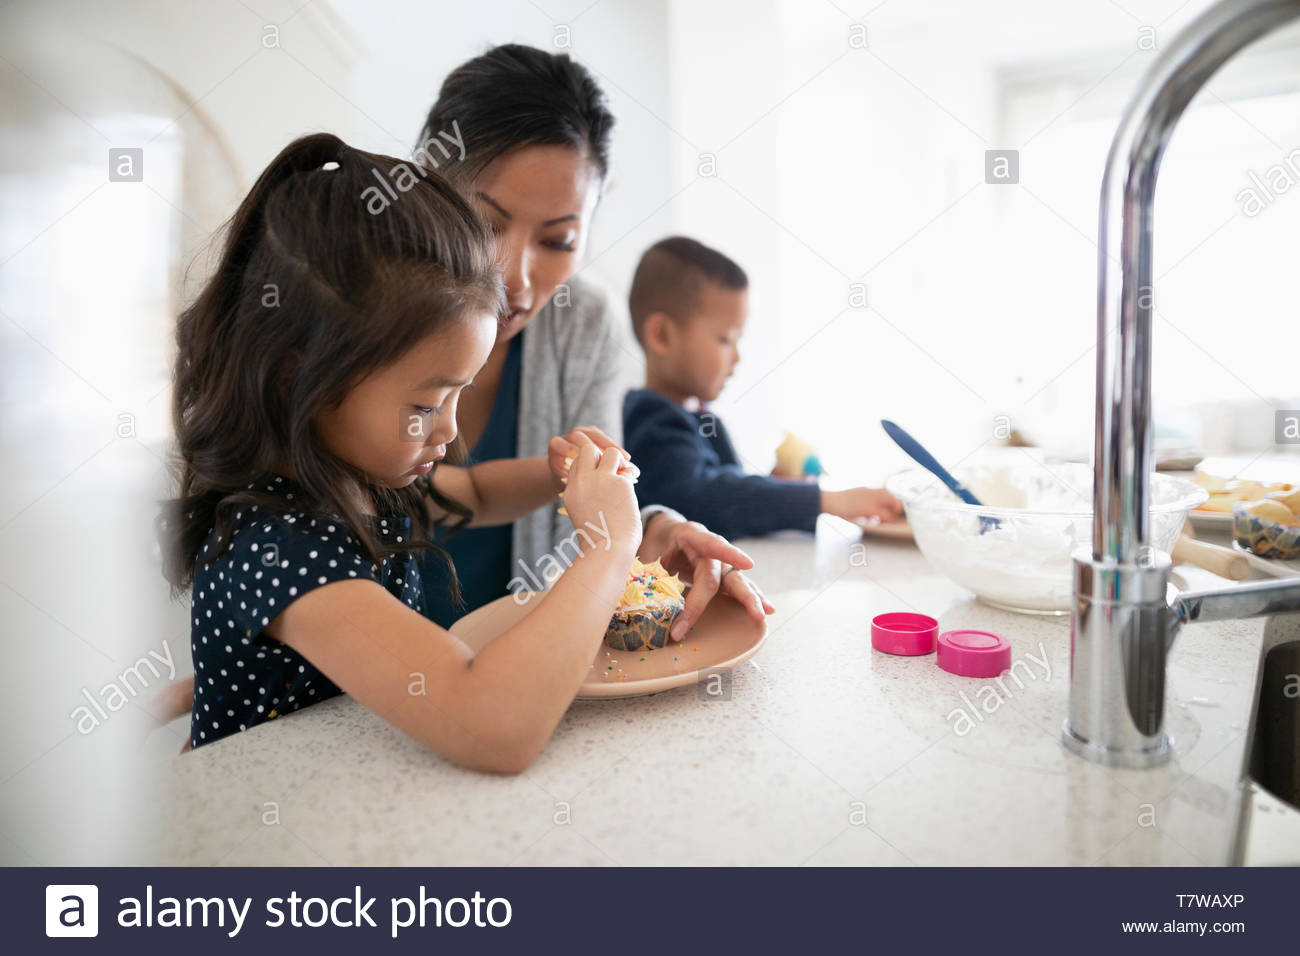 Mother and children decorating cupcakes in kitchen - Stock Image